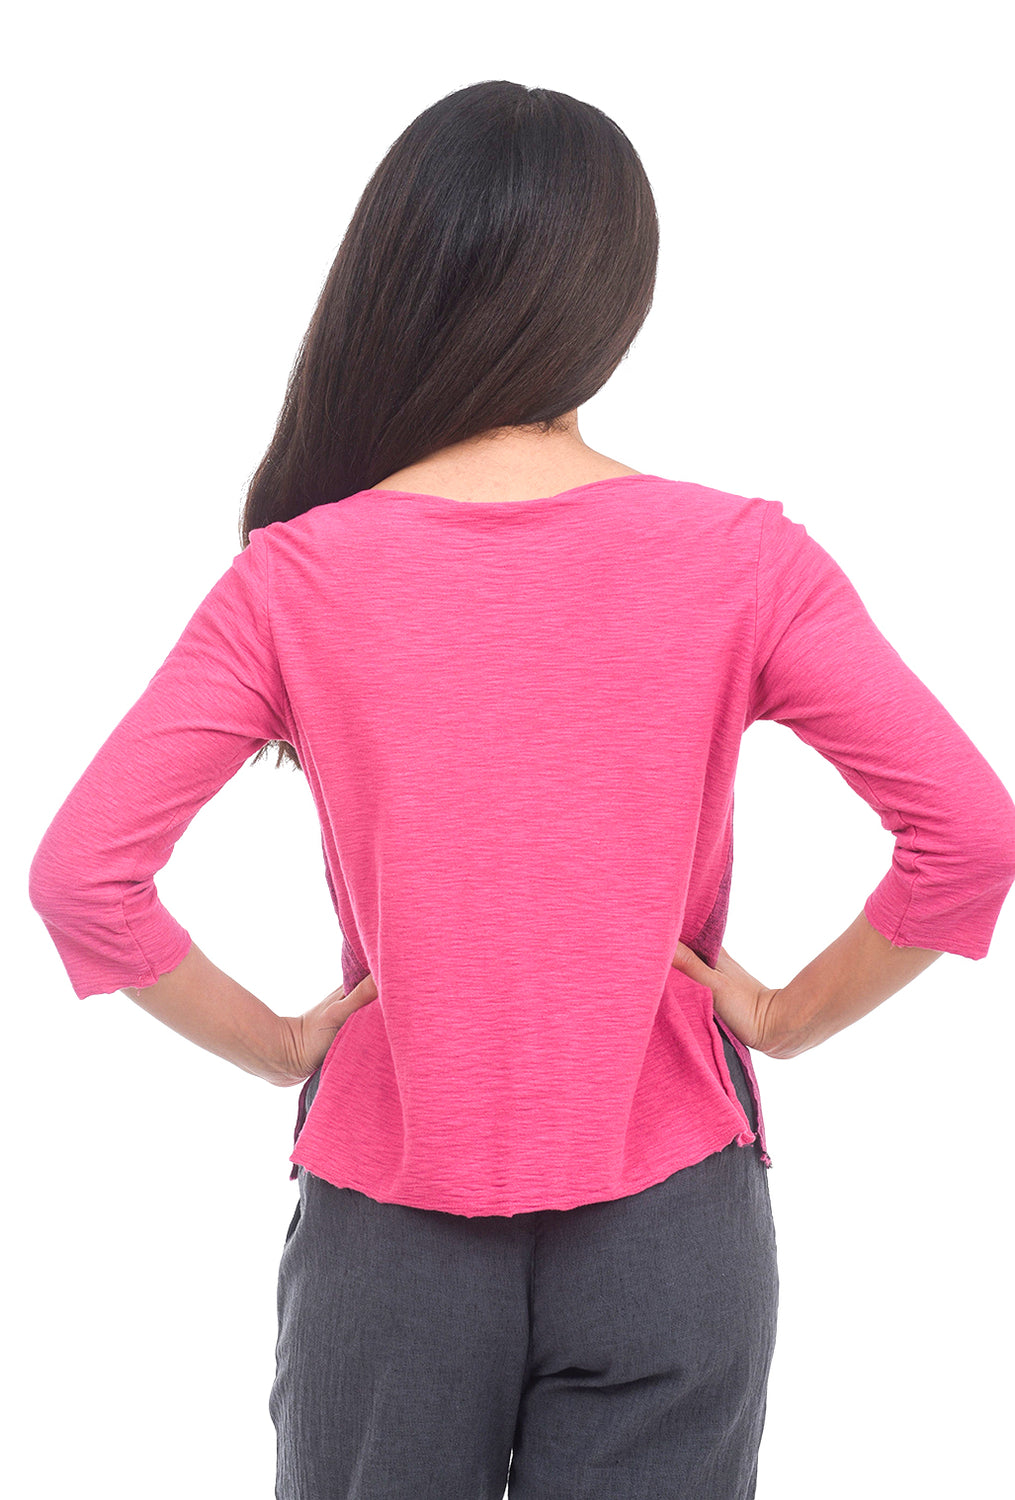 Cut Loose Cross Hatch Combo Top, Cherry Fizz